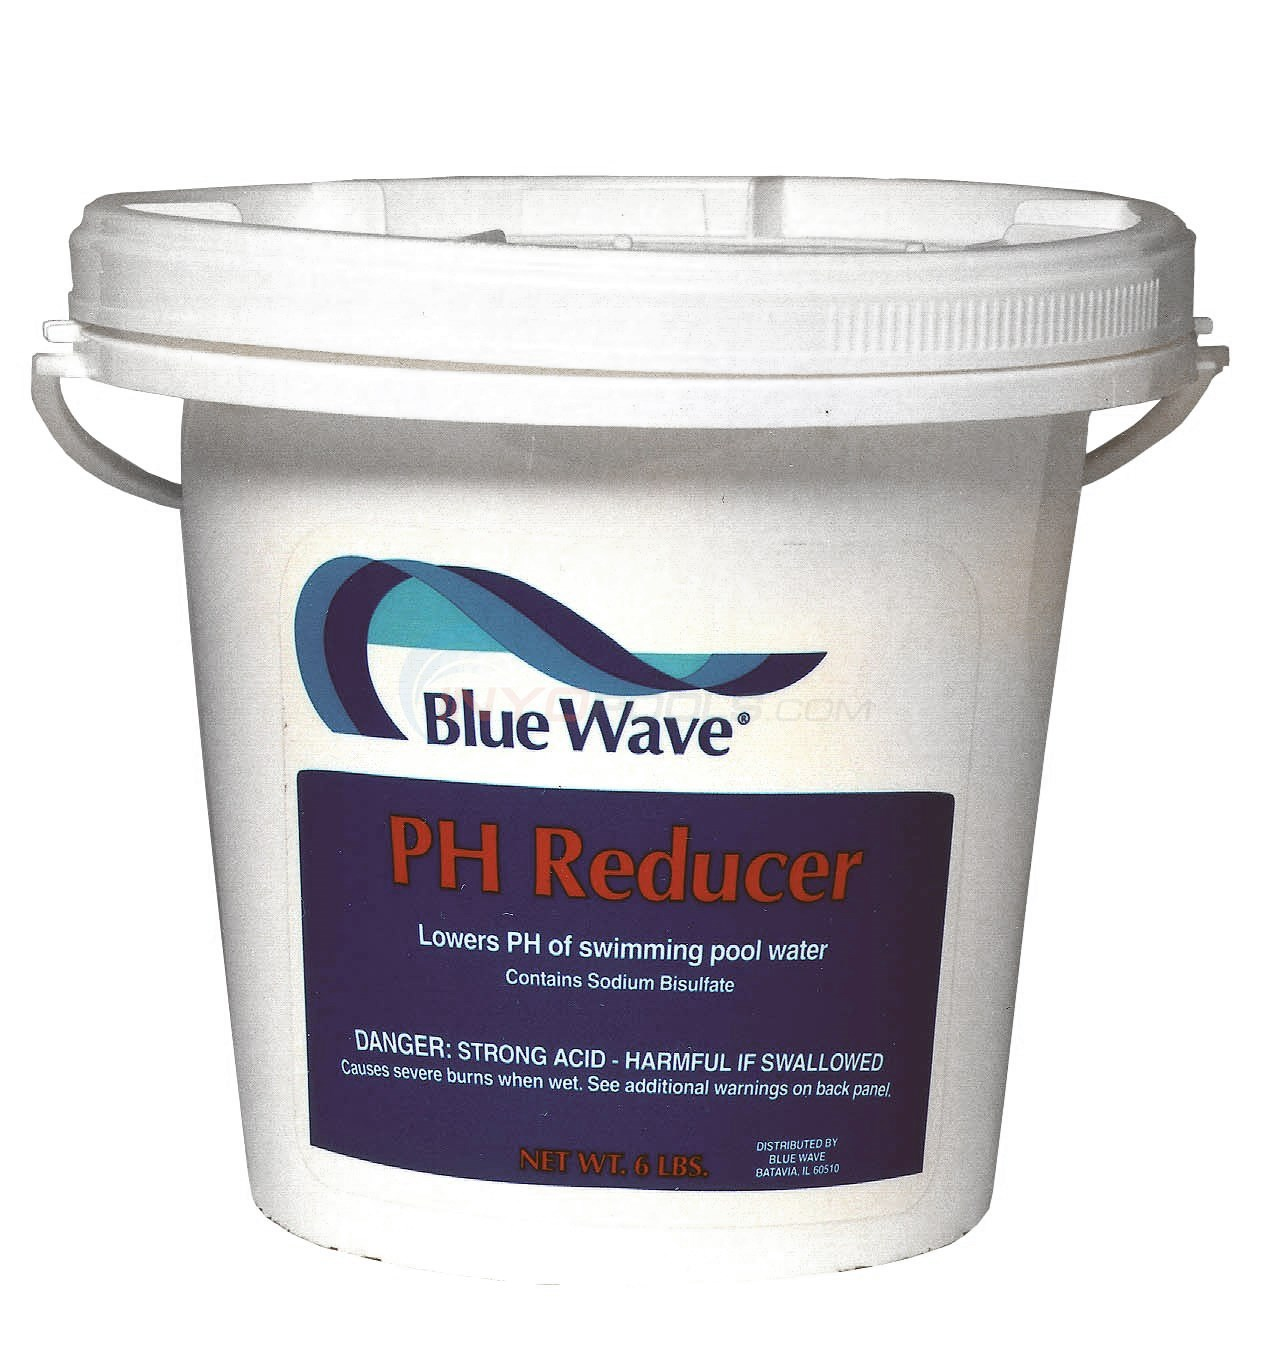 Blue Wave pH Reducer 6 lb. pail - NY505